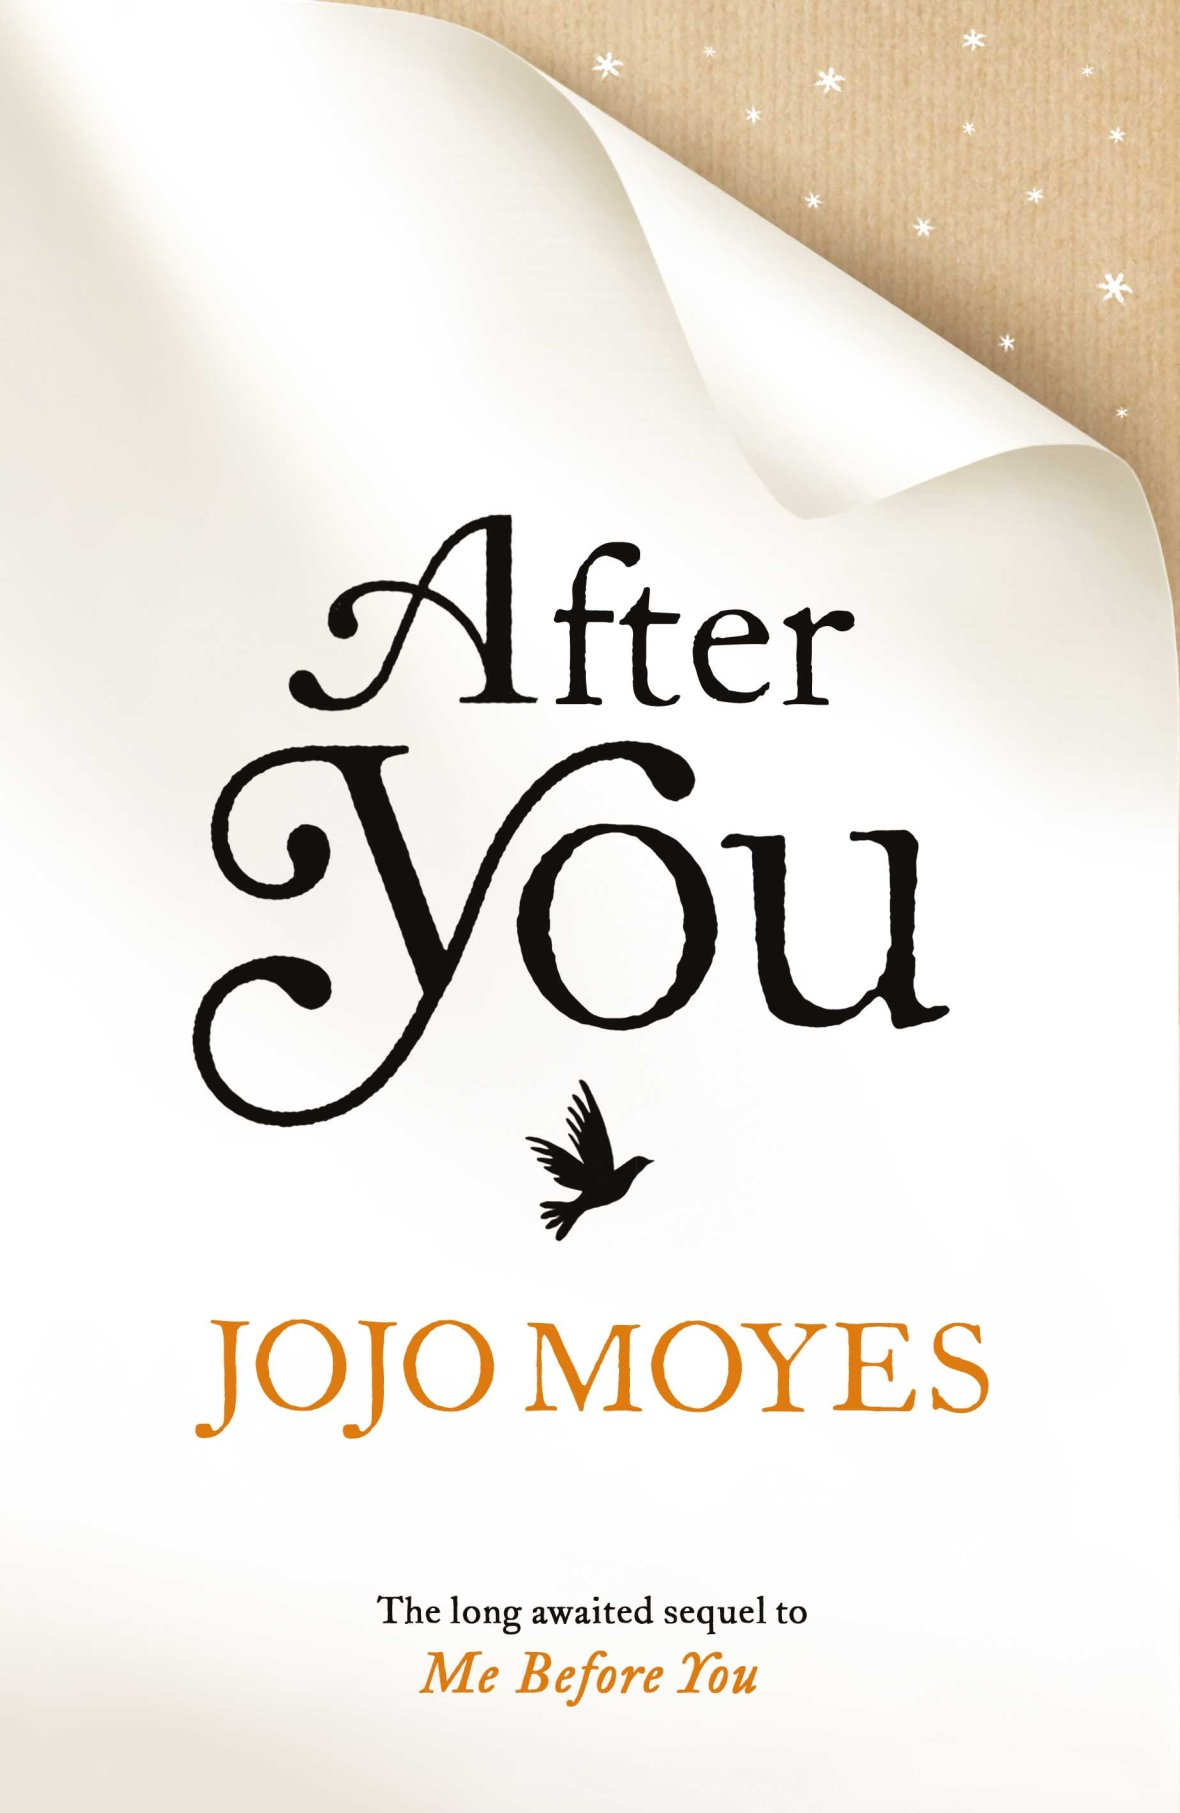 9780718177010-after-you-jojo-moyes_1